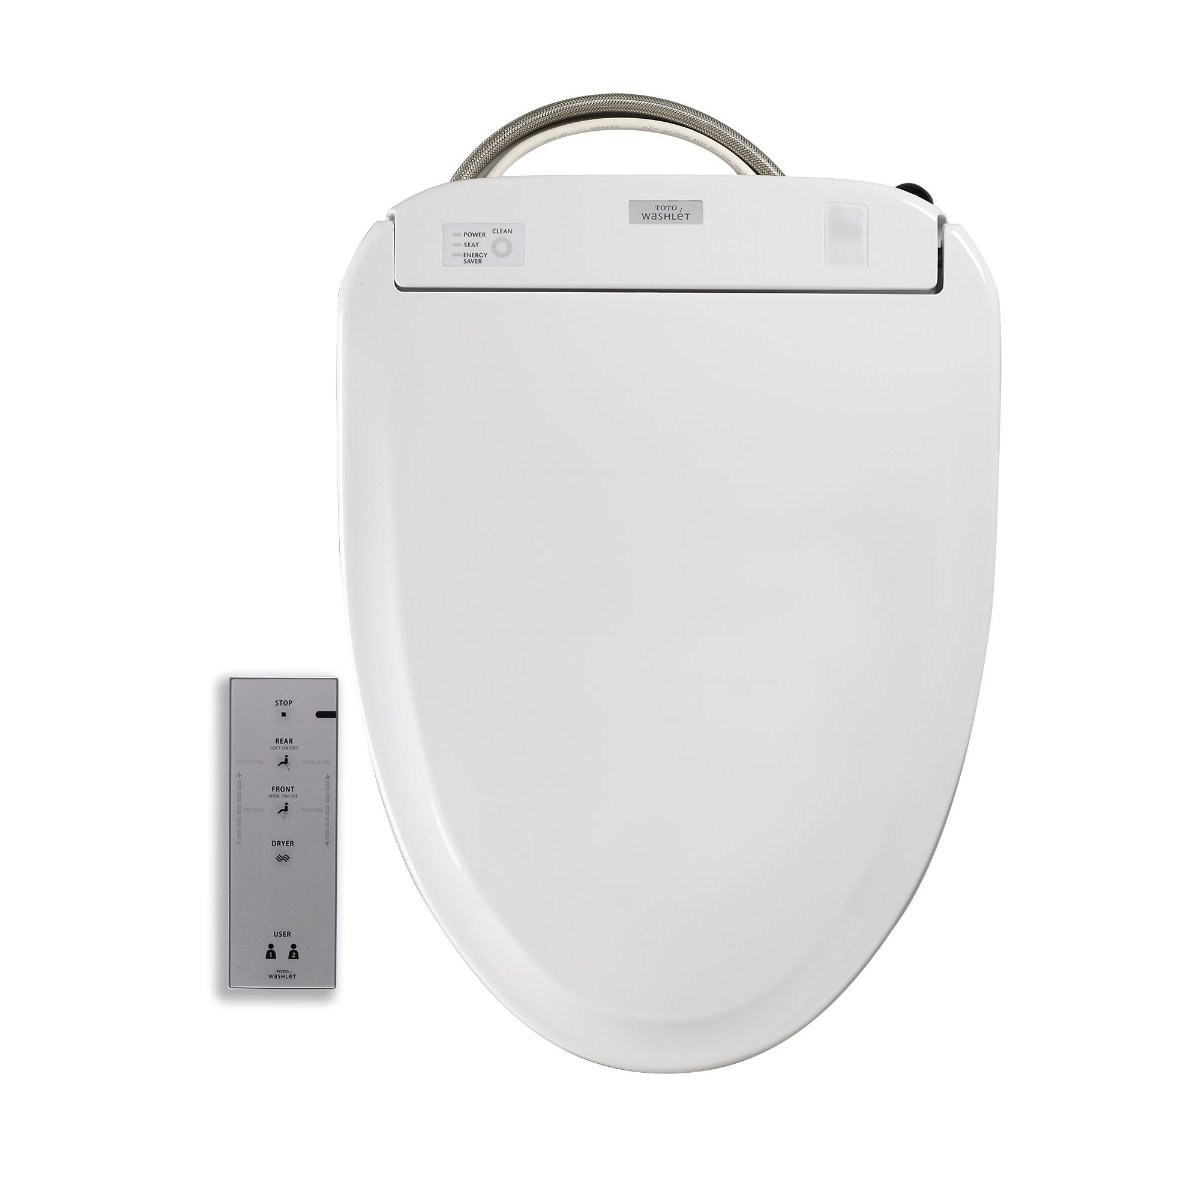 Toto SW584#01 Washlet S350e Toilet Seat-Elongated with ewater+, Cotton